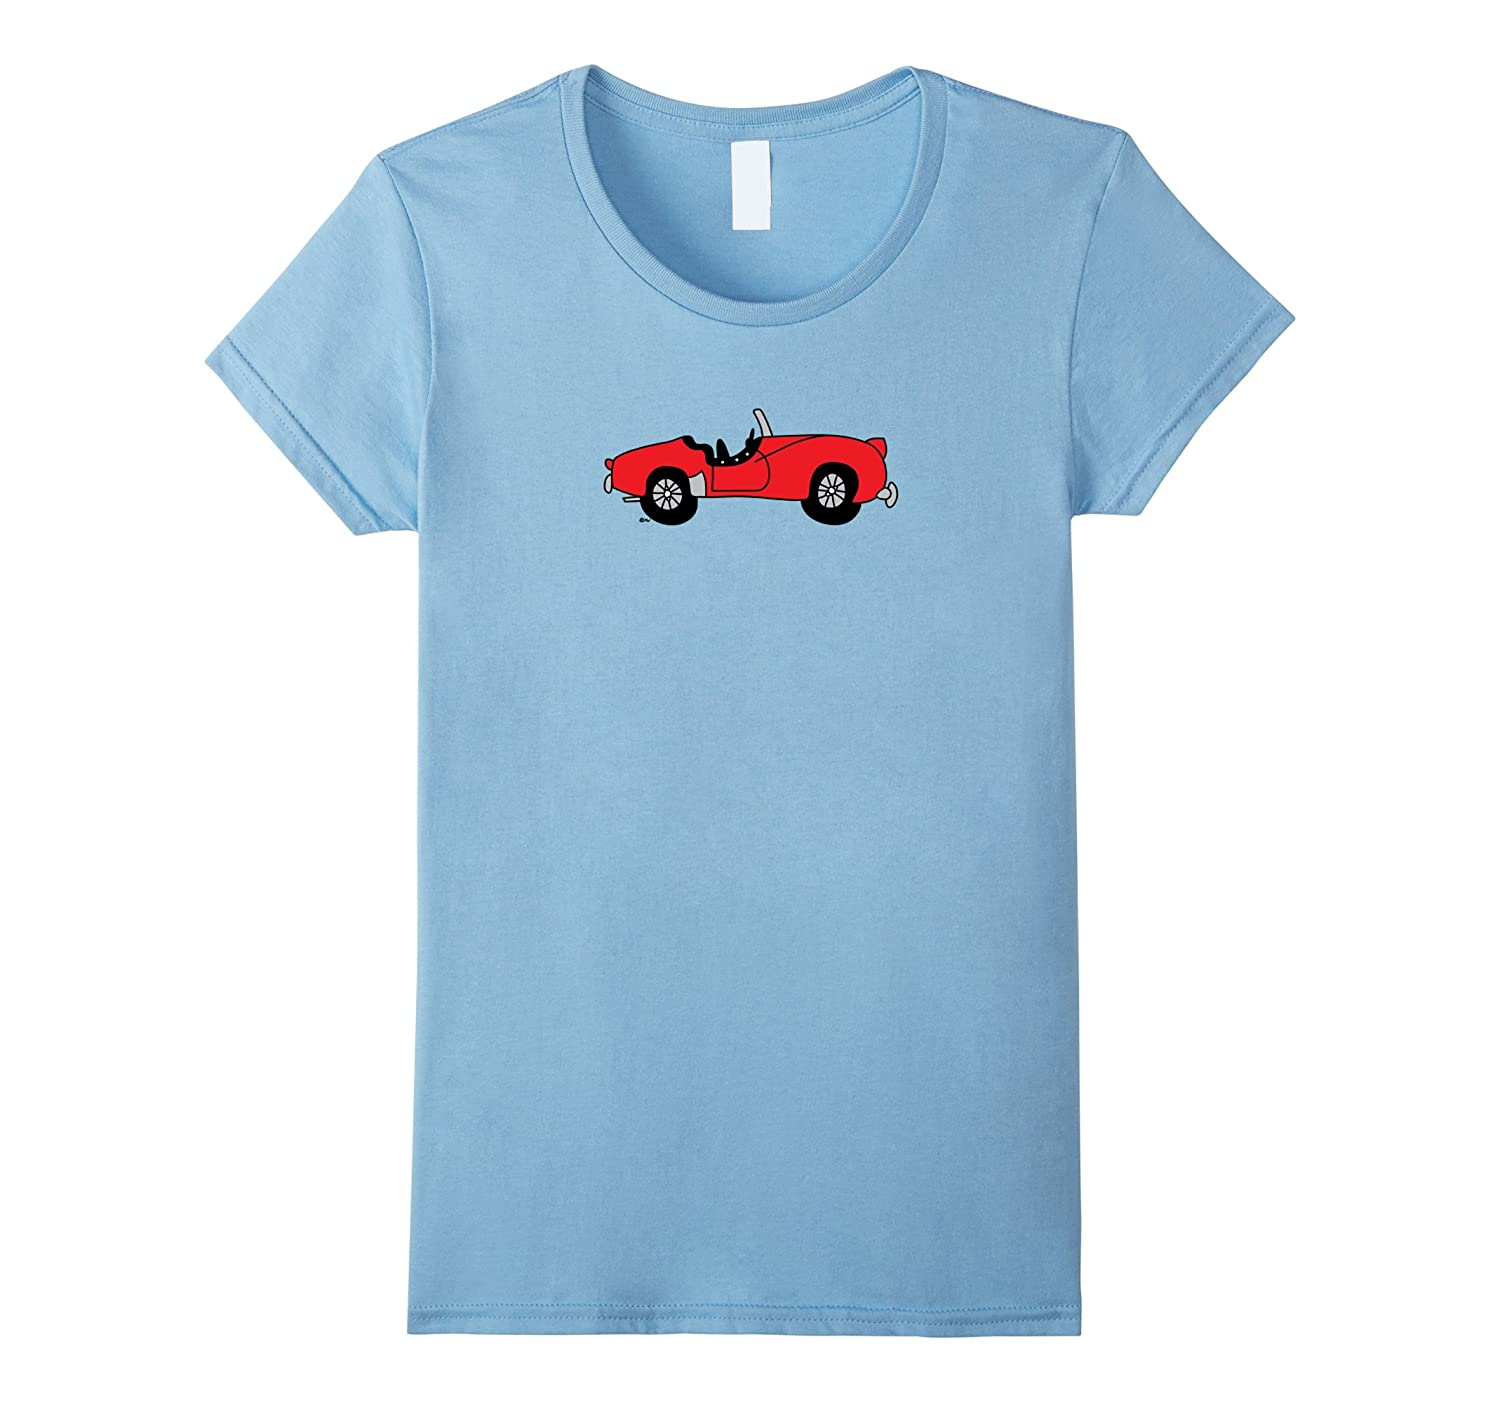 Triumph Tr3 Color Chart Wiring Diagram Red Cartoon British Car Love Shirt Clothing 1500x1403